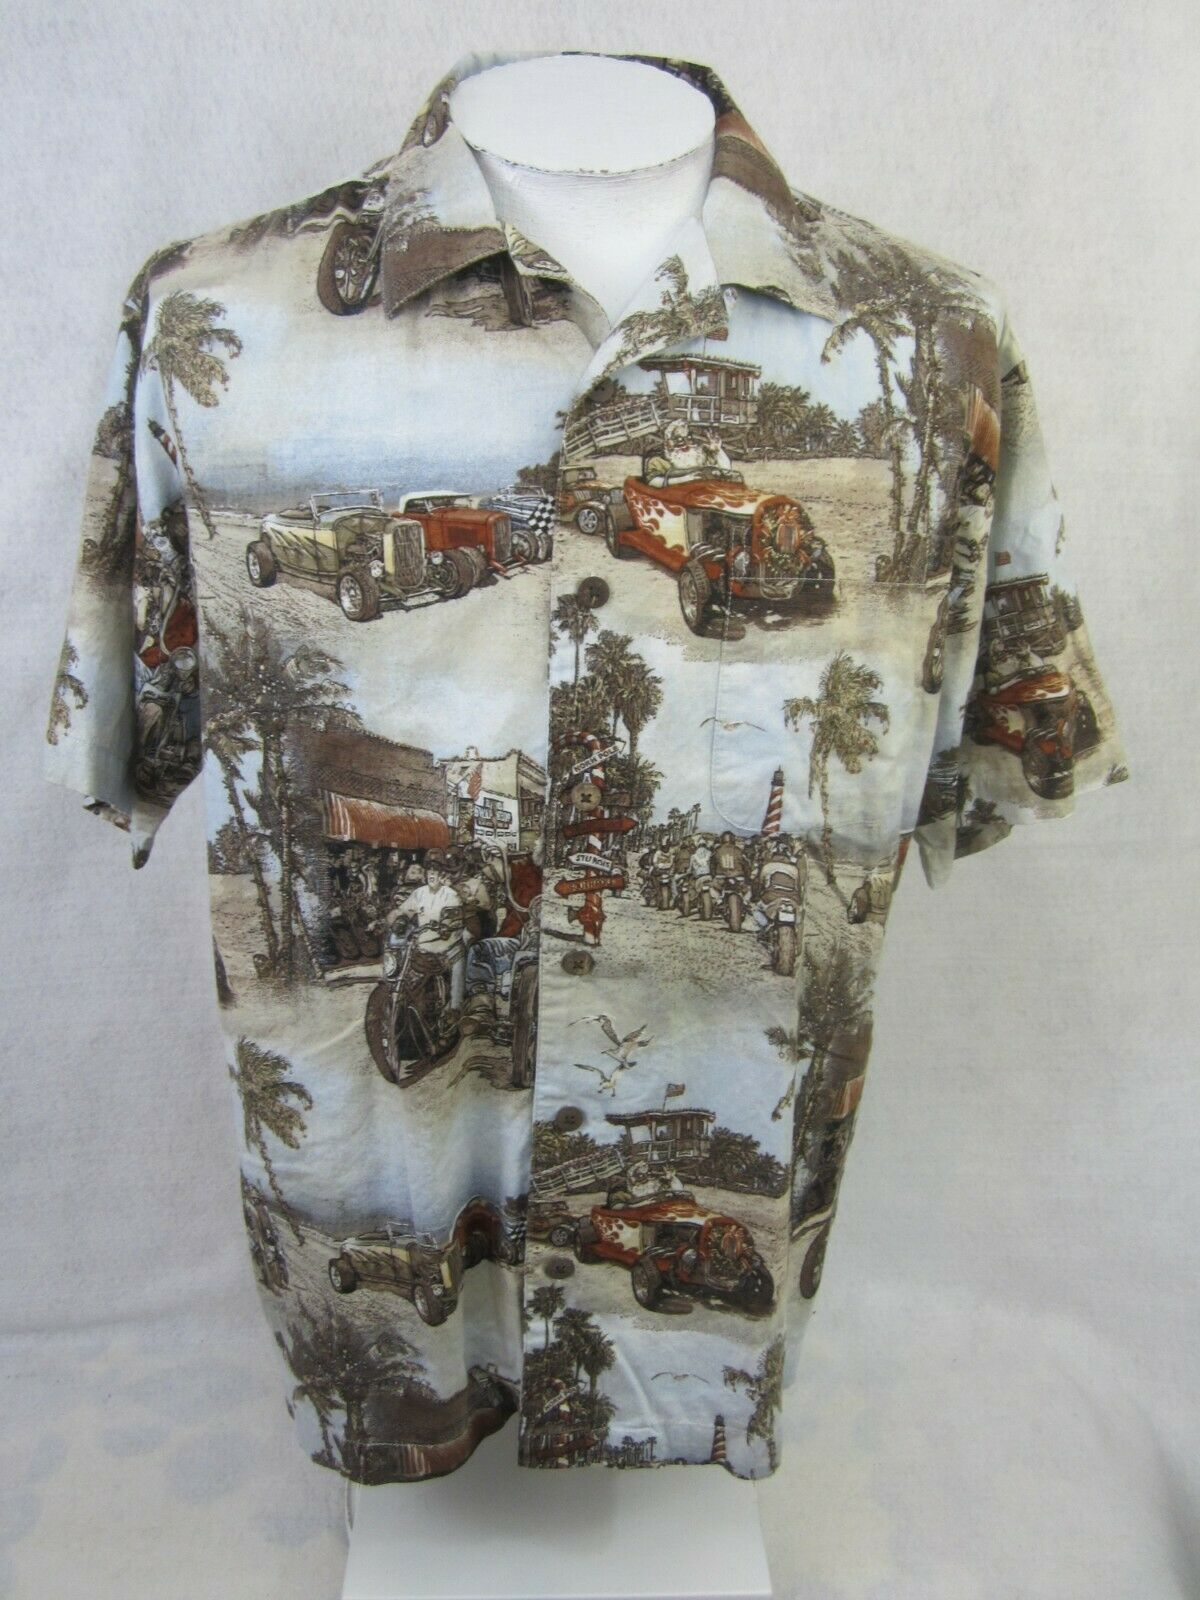 66ebedc9cbbb3b WINDHAM POINTE Men Hawaiian Christmas shirt p2p 24.5 L Beach motorcycle  Santa nzarlb8431-Casual Shirts   Tops